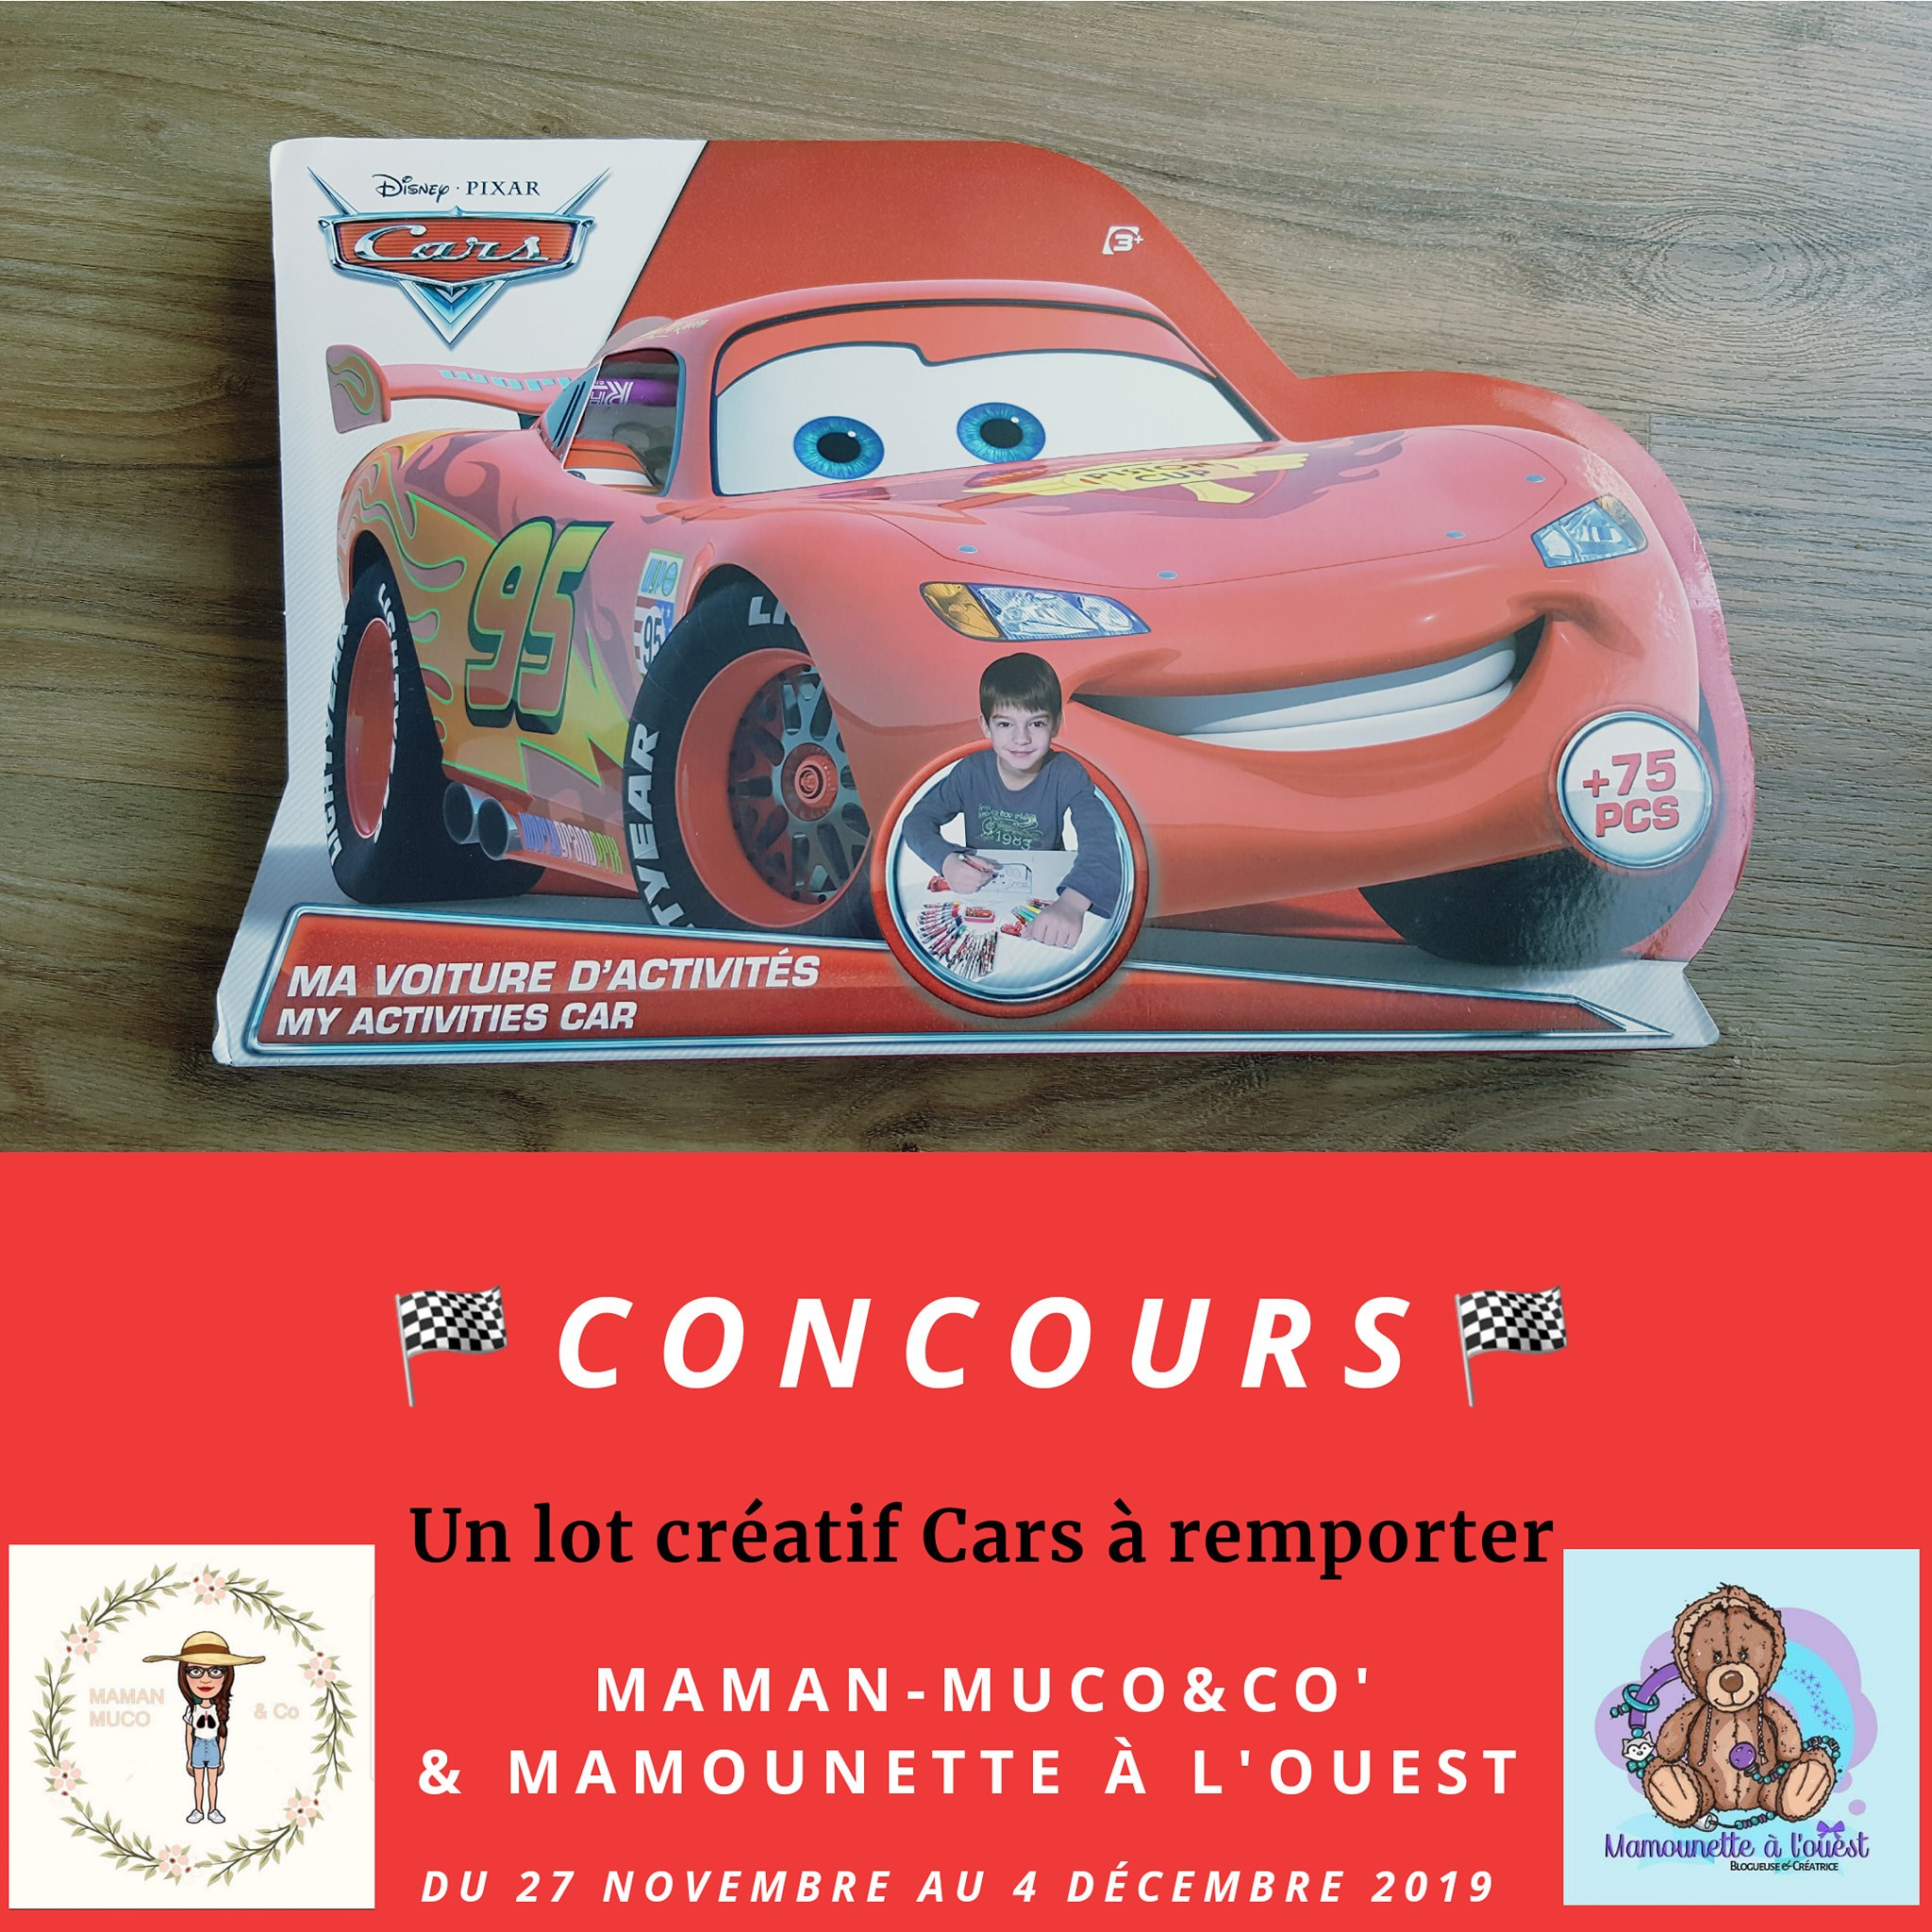 Concours Cars avec Maman-Muco&Co